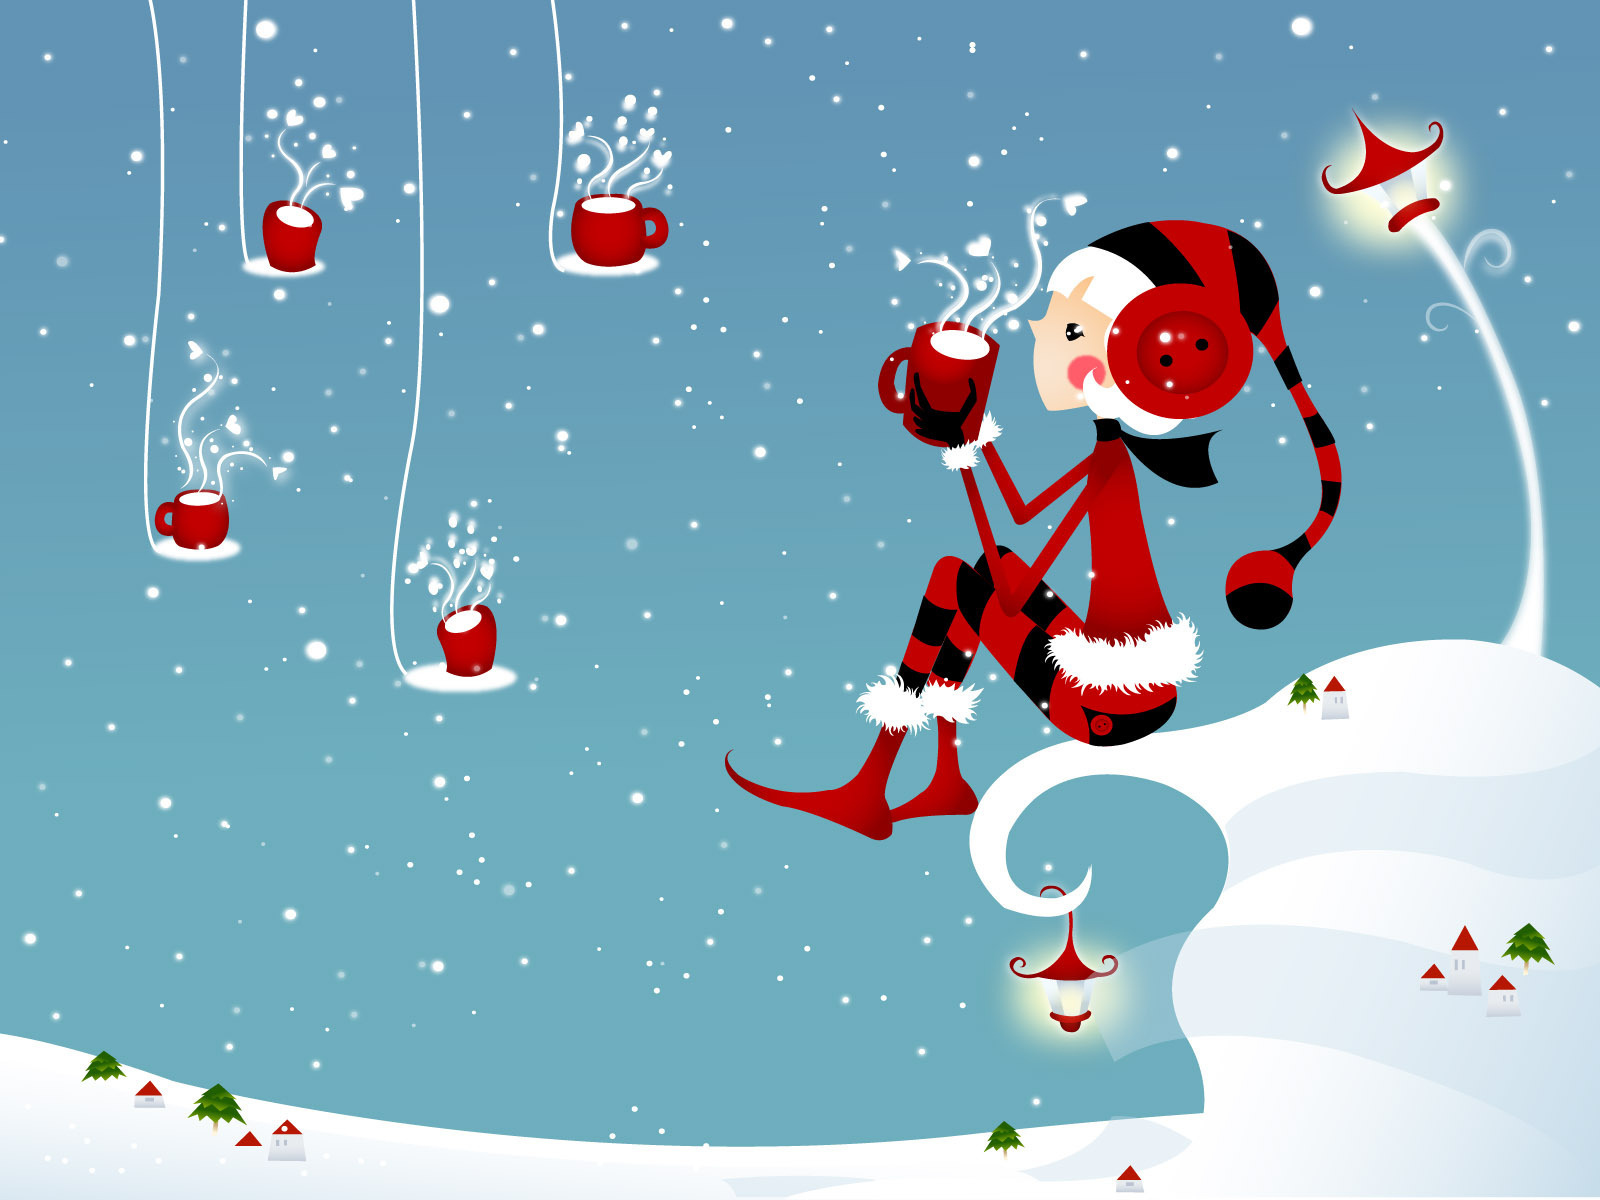 snoopy wallpaper 2015 1600x1200